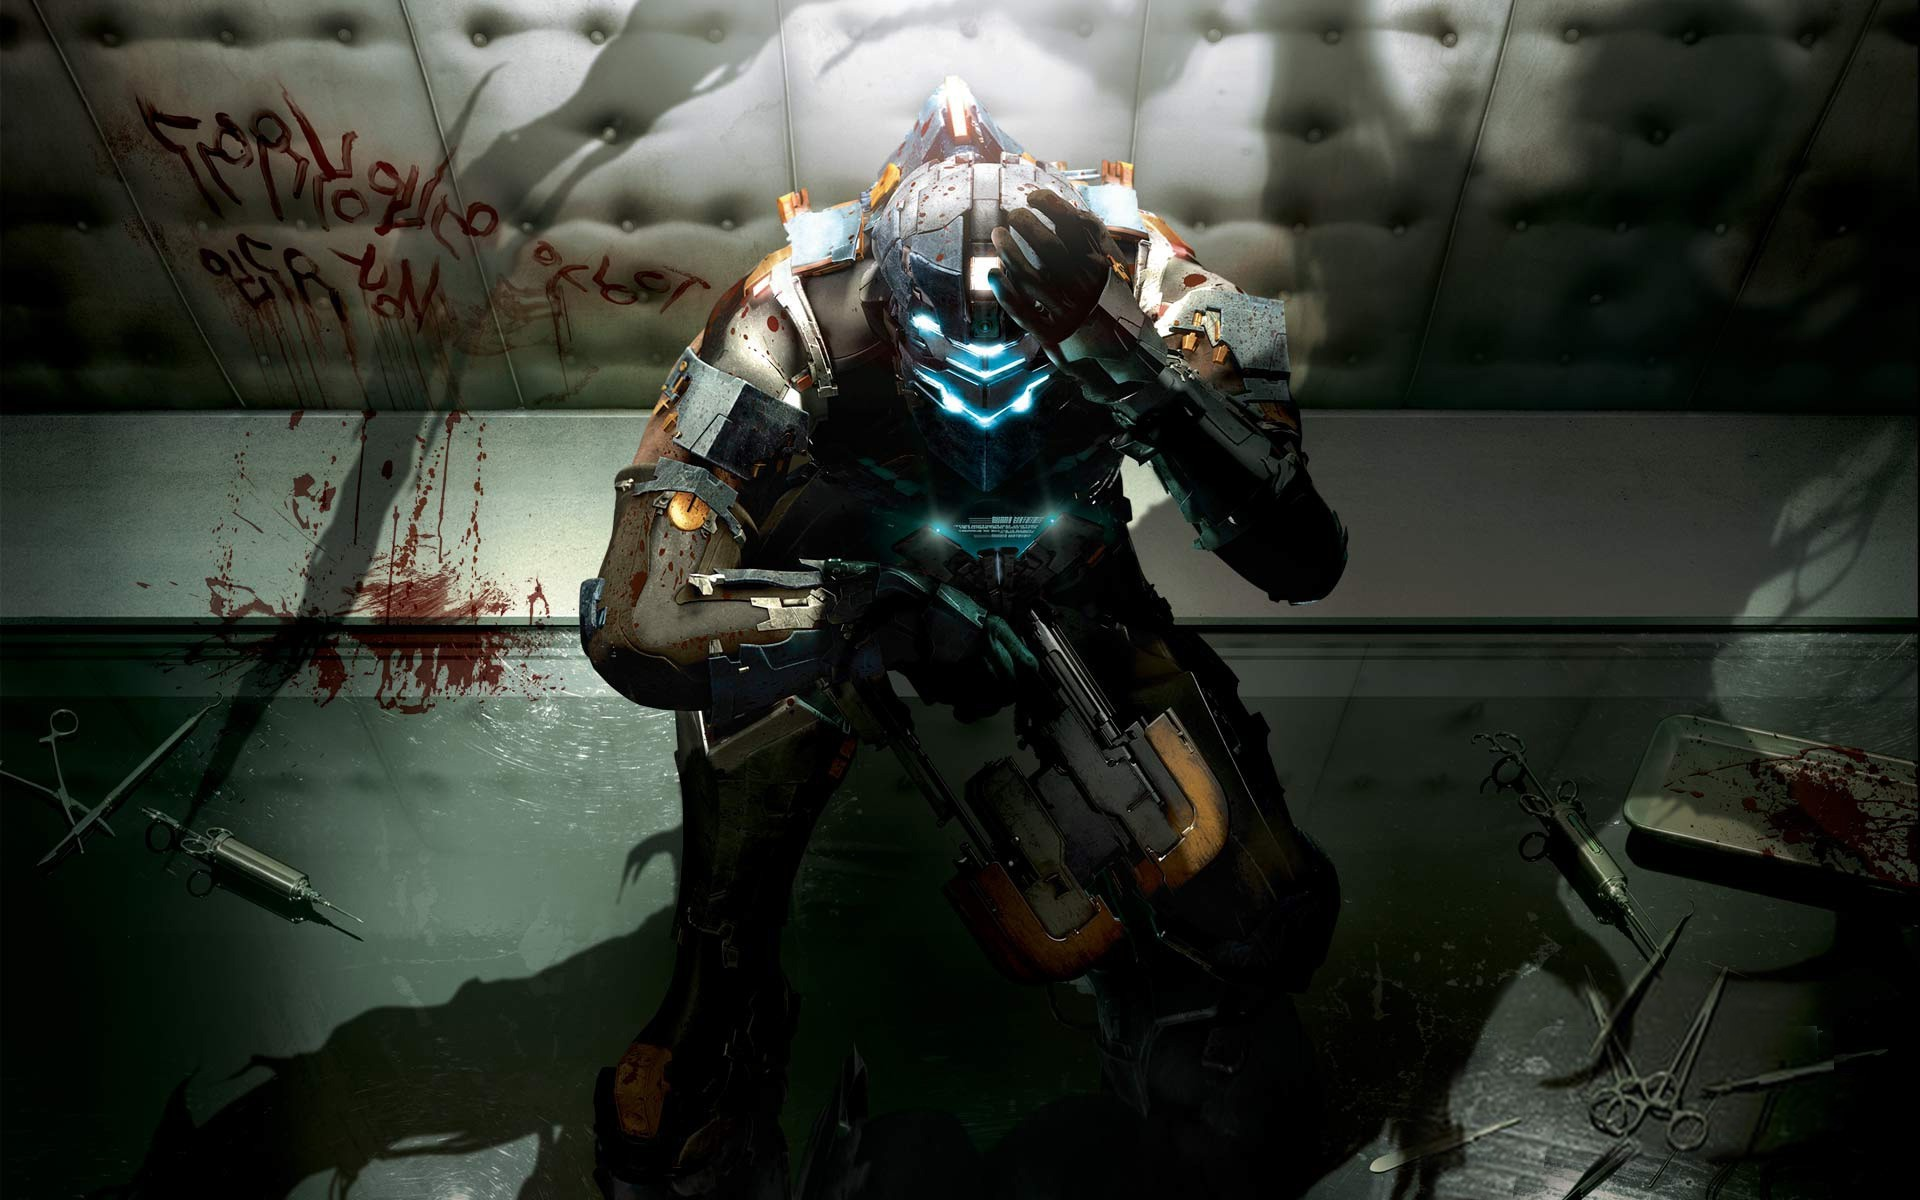 deadspacehdwallpaper Airborne Gamer The Elite Gaming Blog   HD Wallpapers    Pinterest   Dead space, Hd wallpaper and Wallpaper